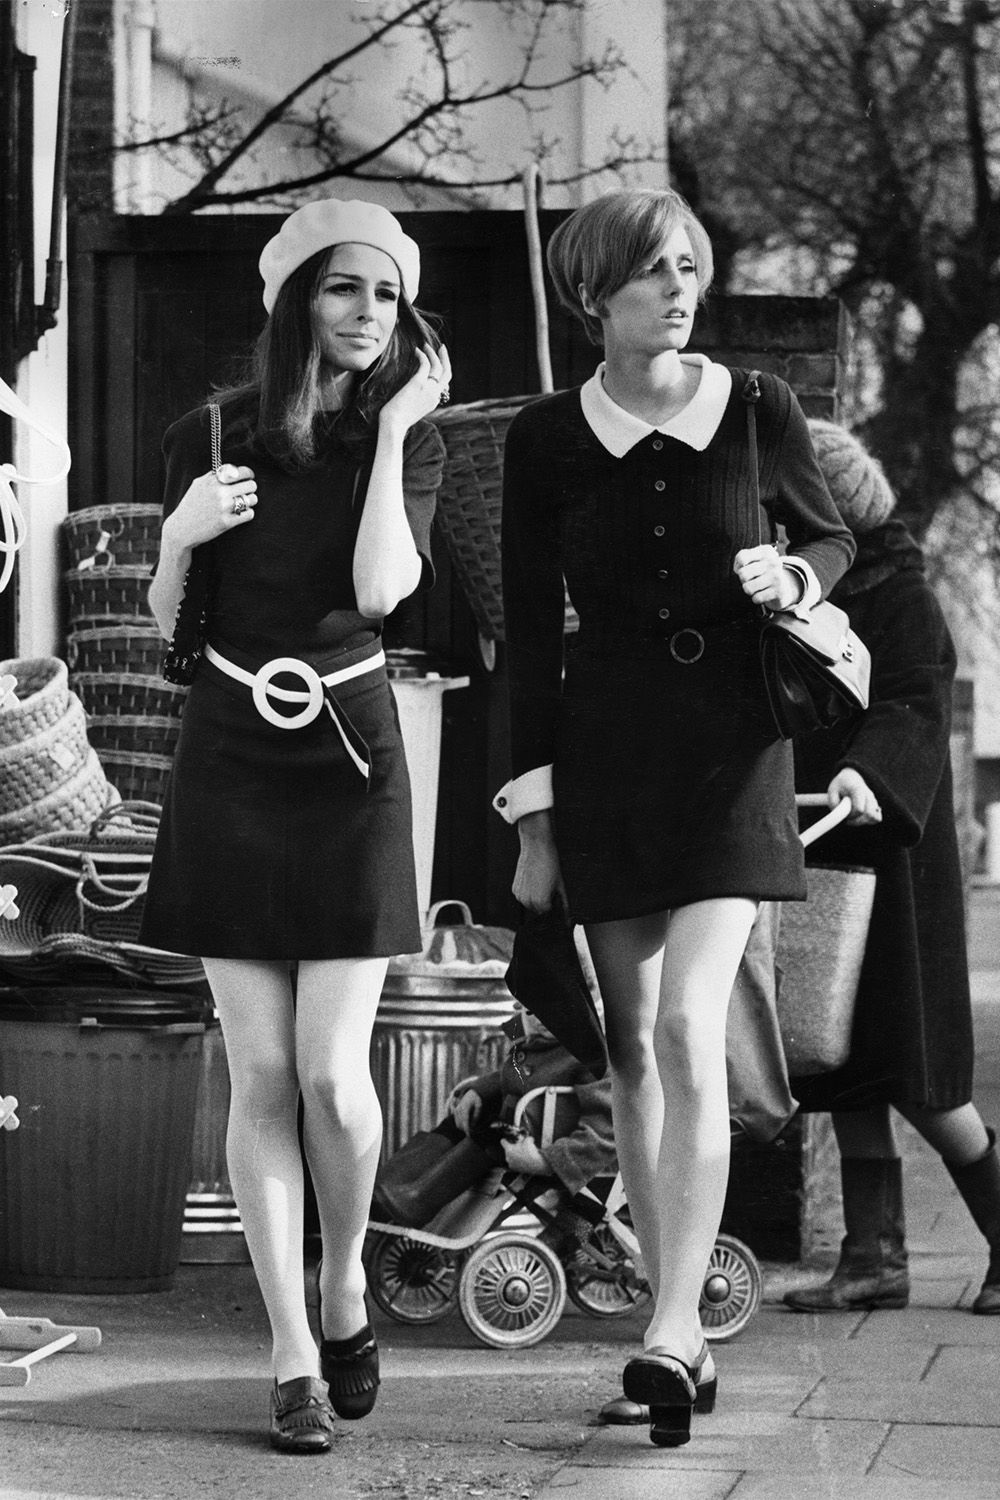 [Image: hbz-1960s-fashion-1968-gettyimages-33493...062747.jpg]